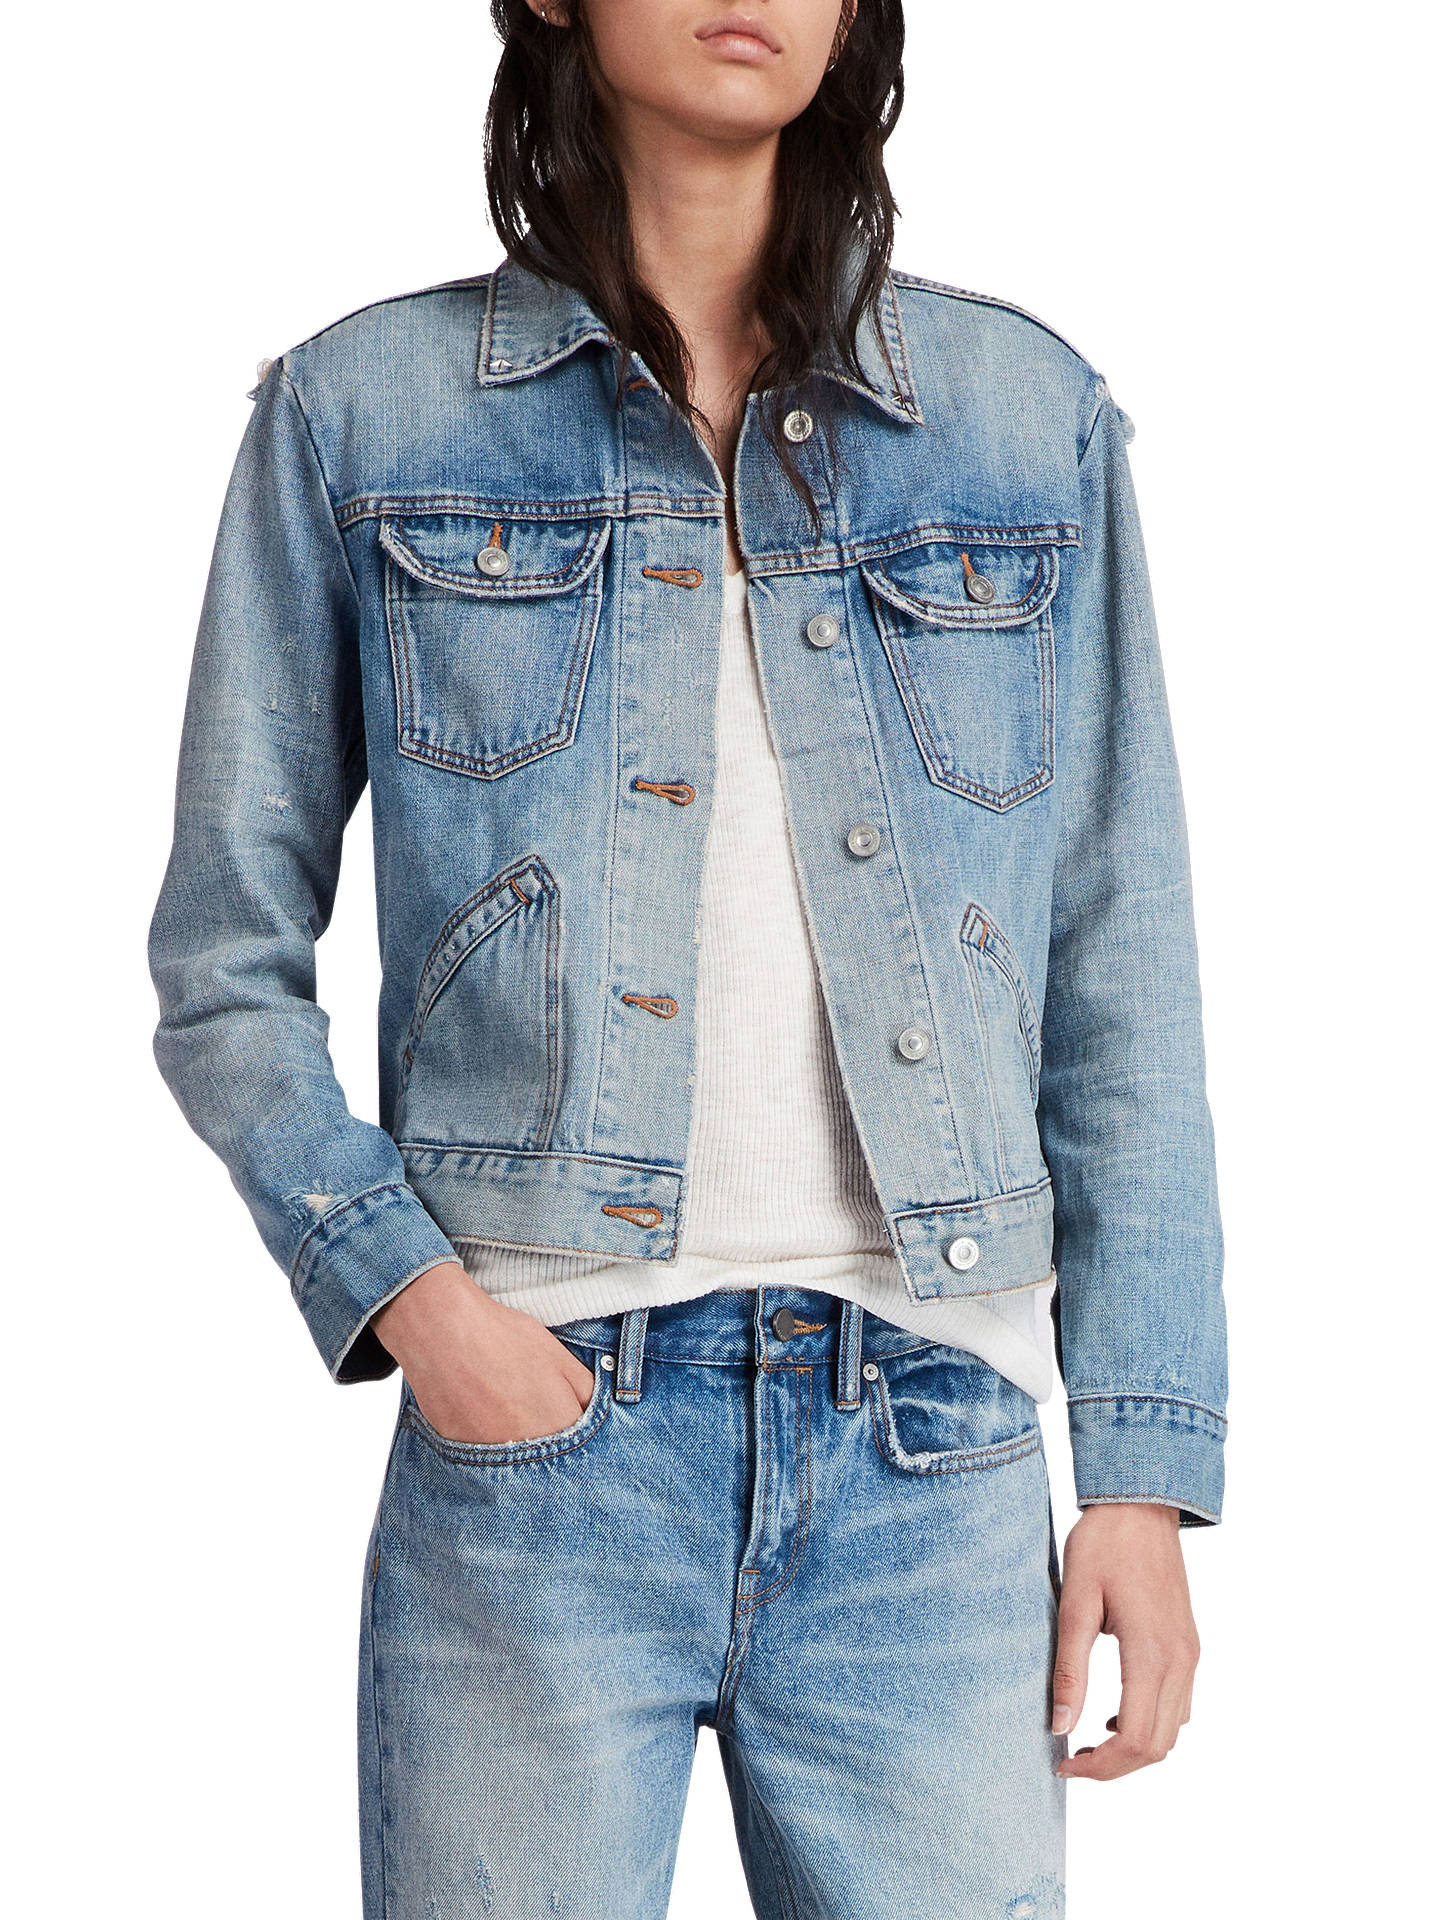 BuyAllSaints Star Denim Jacket, Indigo Blue, S Online at johnlewis.com